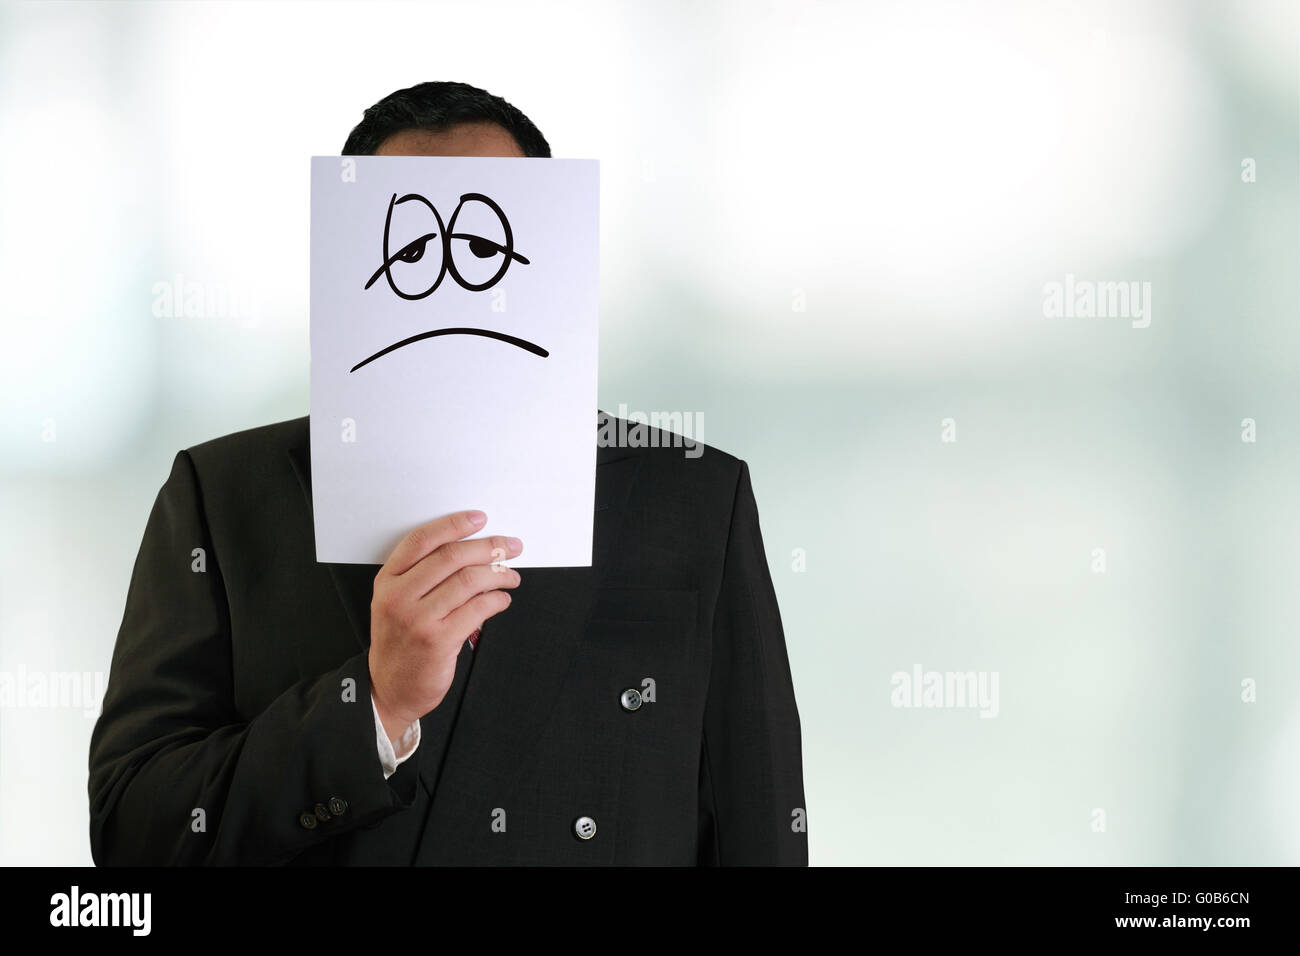 Business concept image of a businessman holding white paper mask with sad and tired face drawn on it - Stock Image